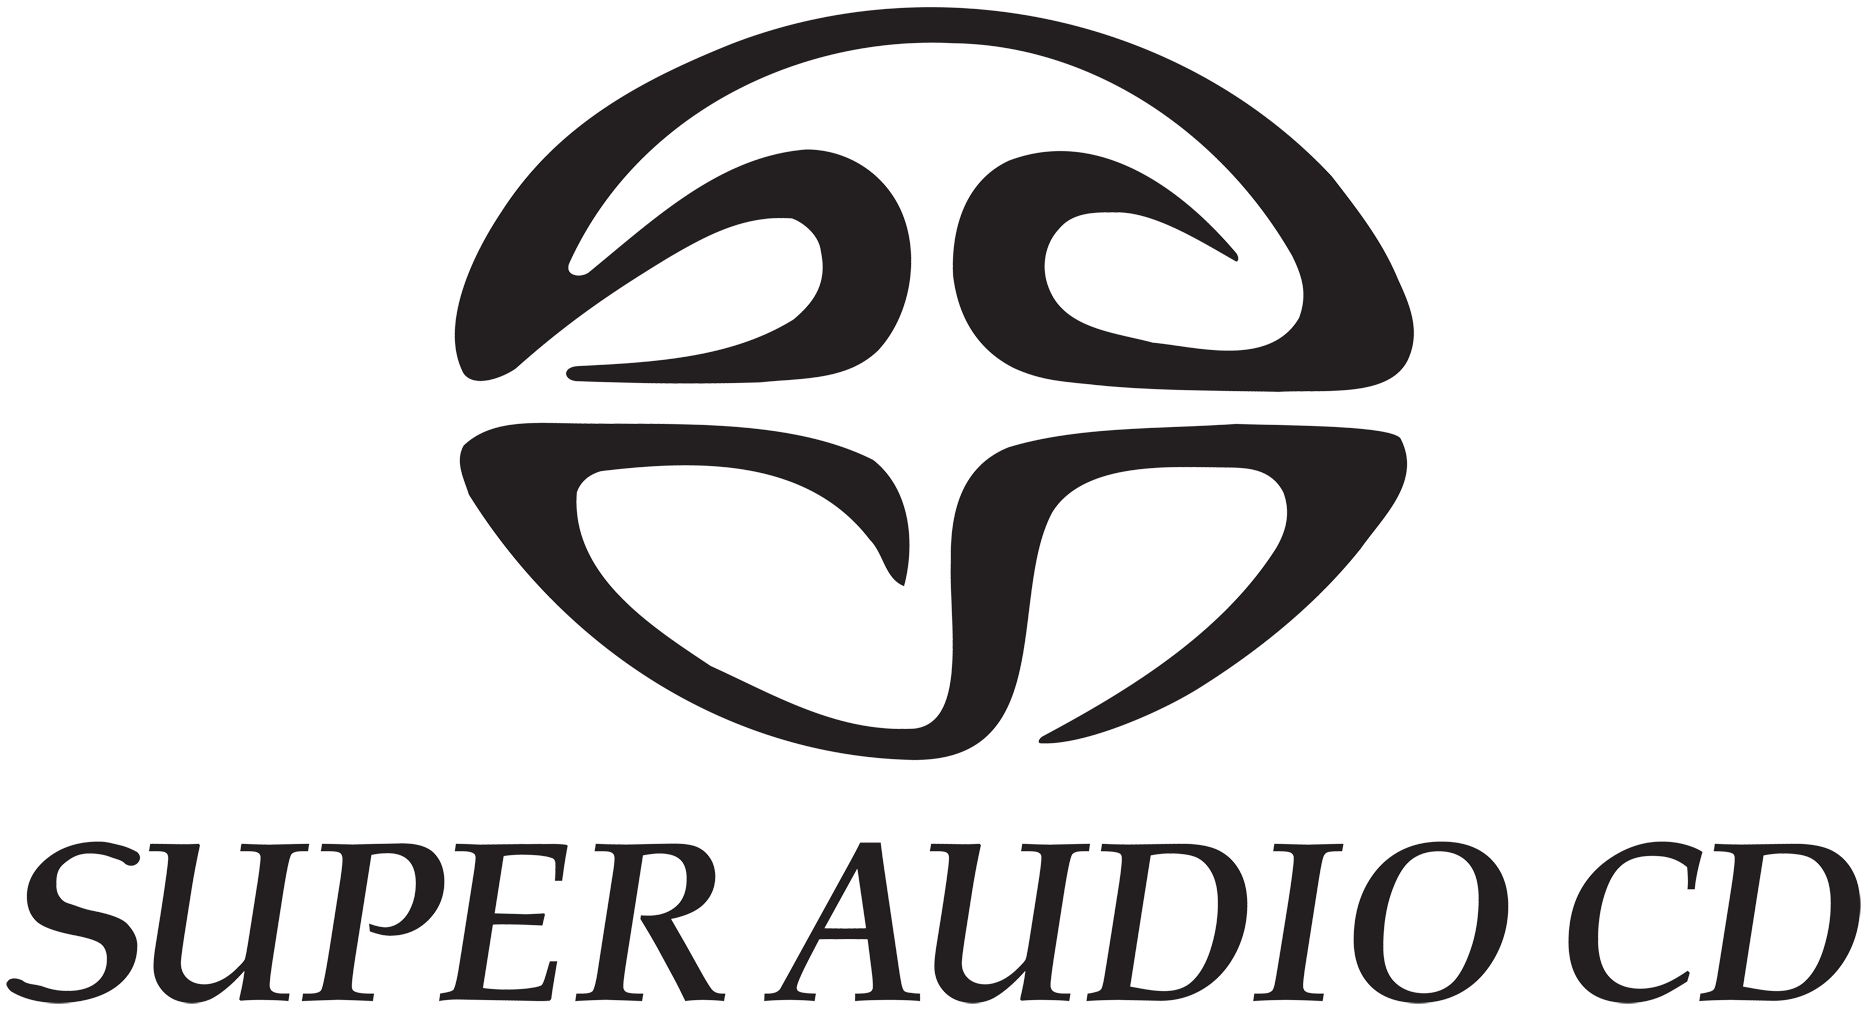 Audio cd png. File super logo wikimedia